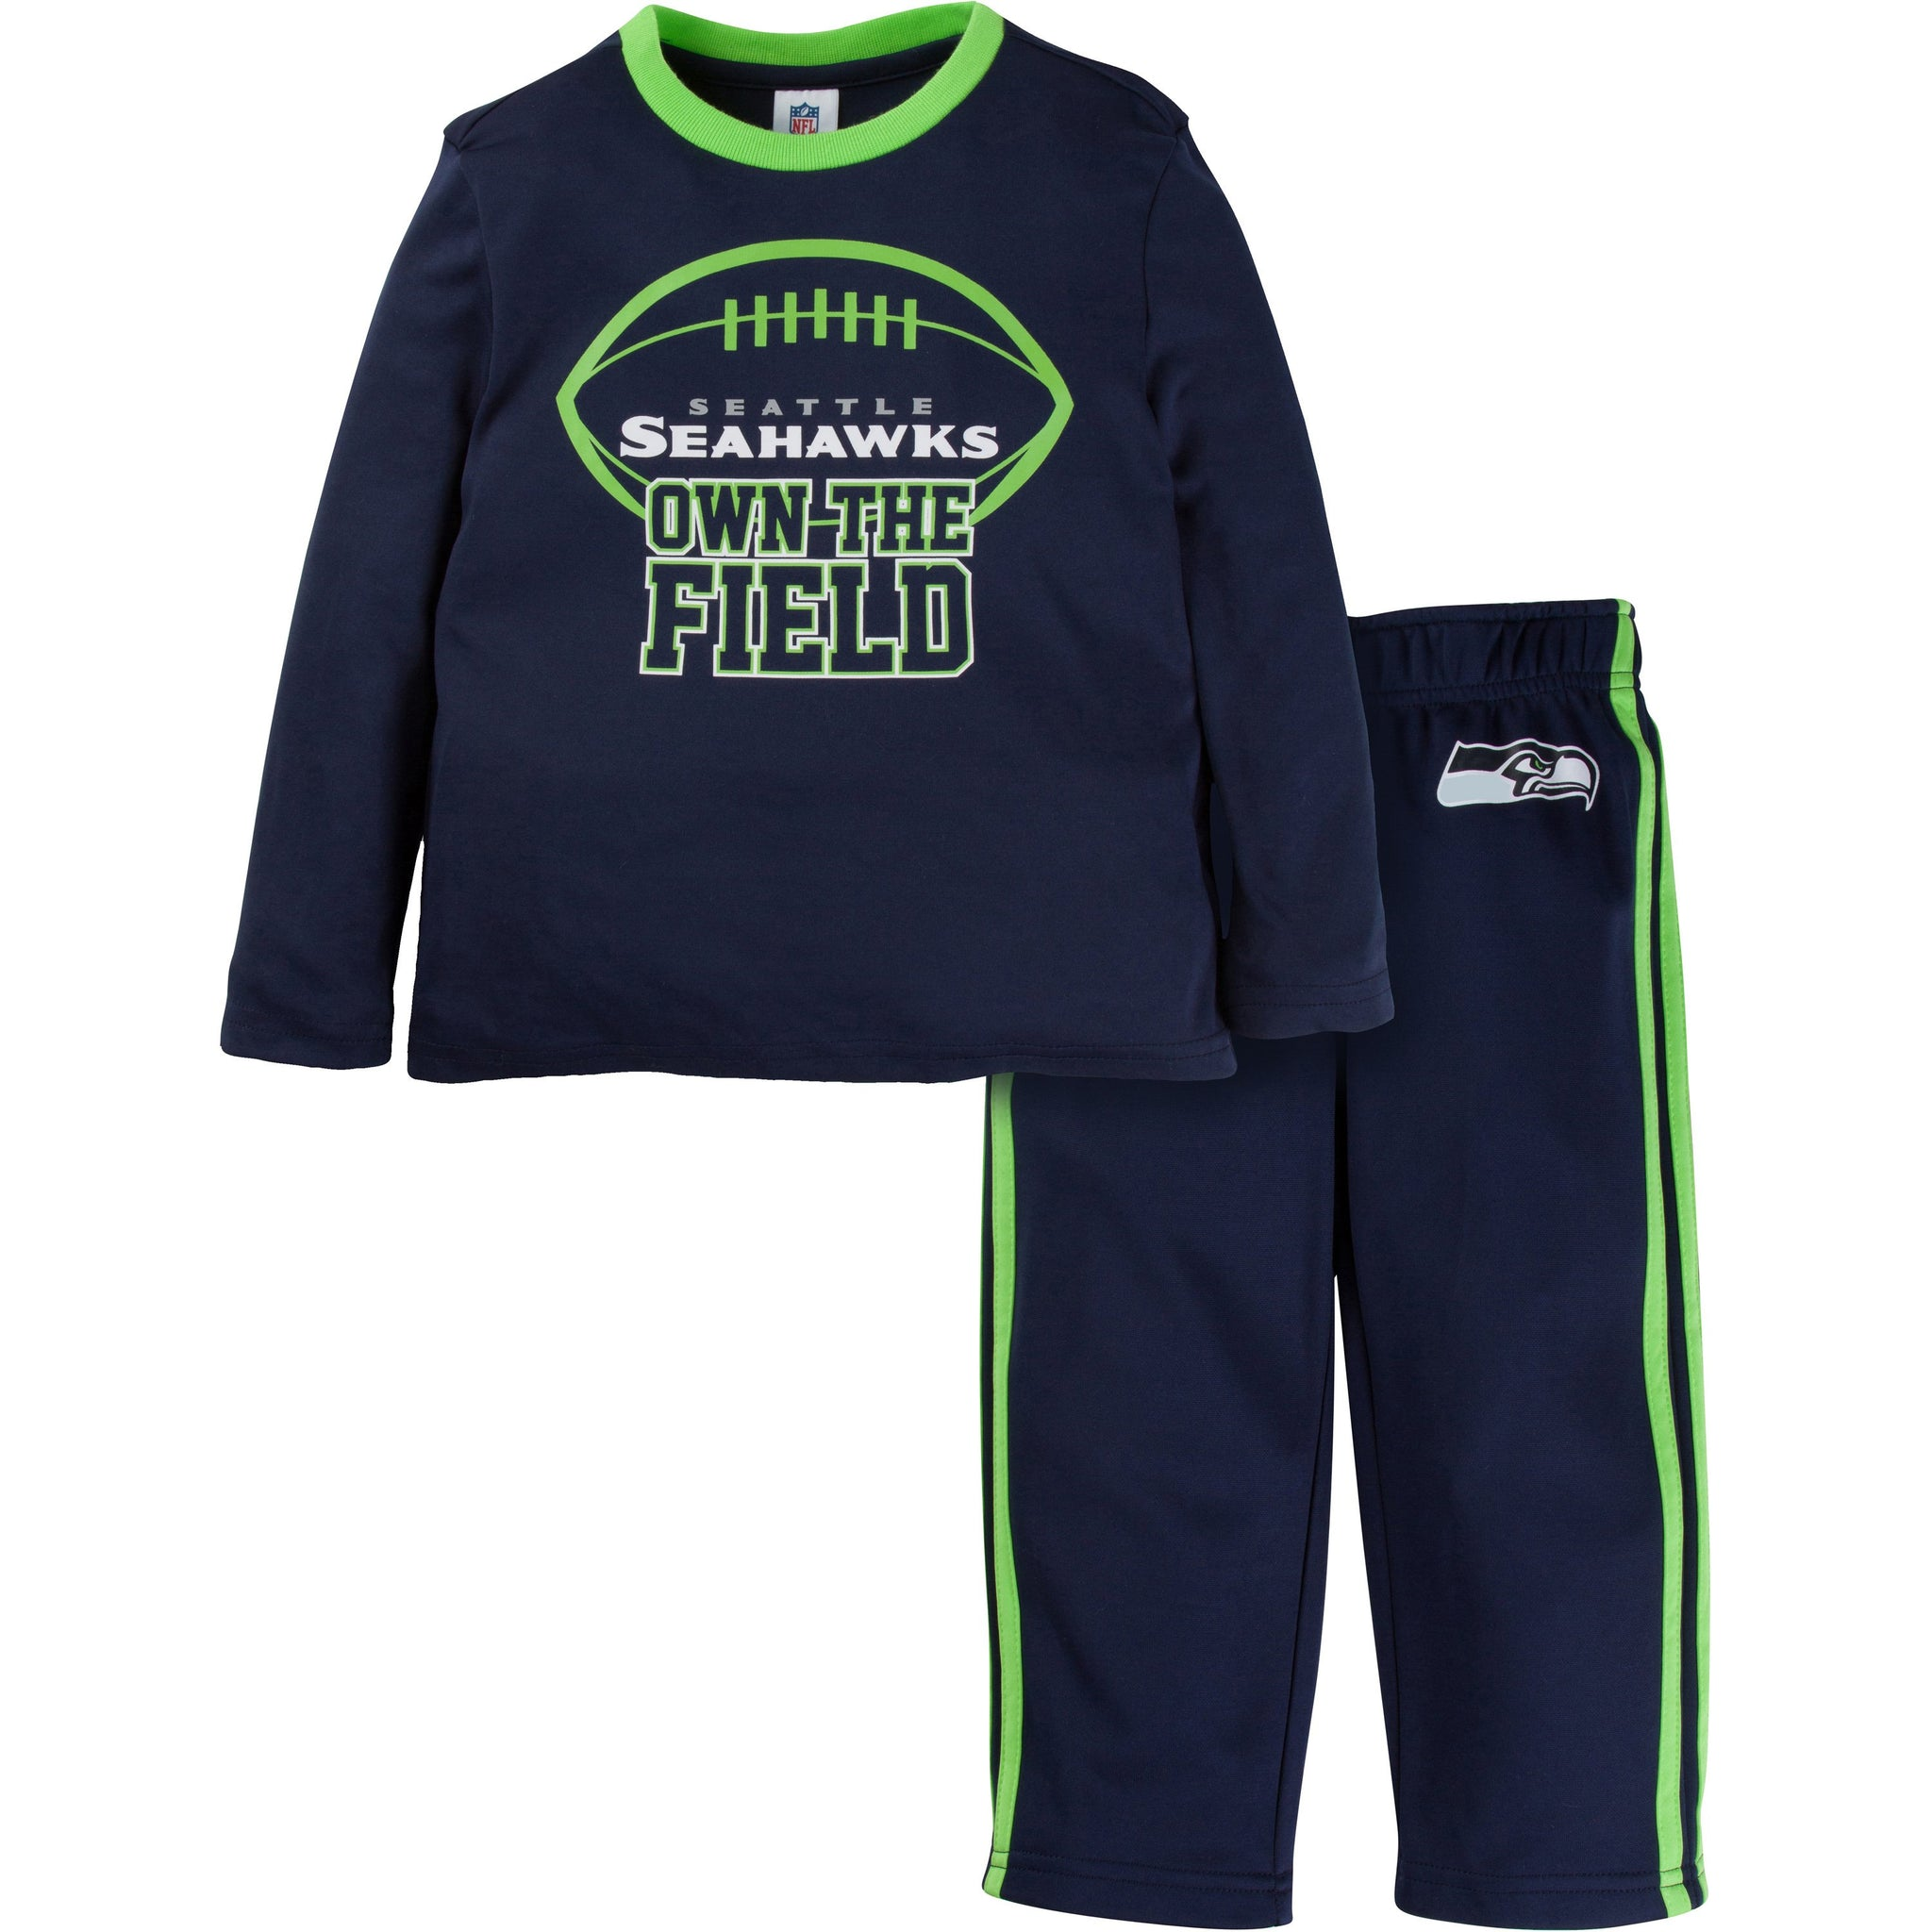 NFL Seattle Seahawks Toddler Boys 2-Piece Performance Long Sleeve Tee Shirt and Pant Set-Gerber Childrenswear